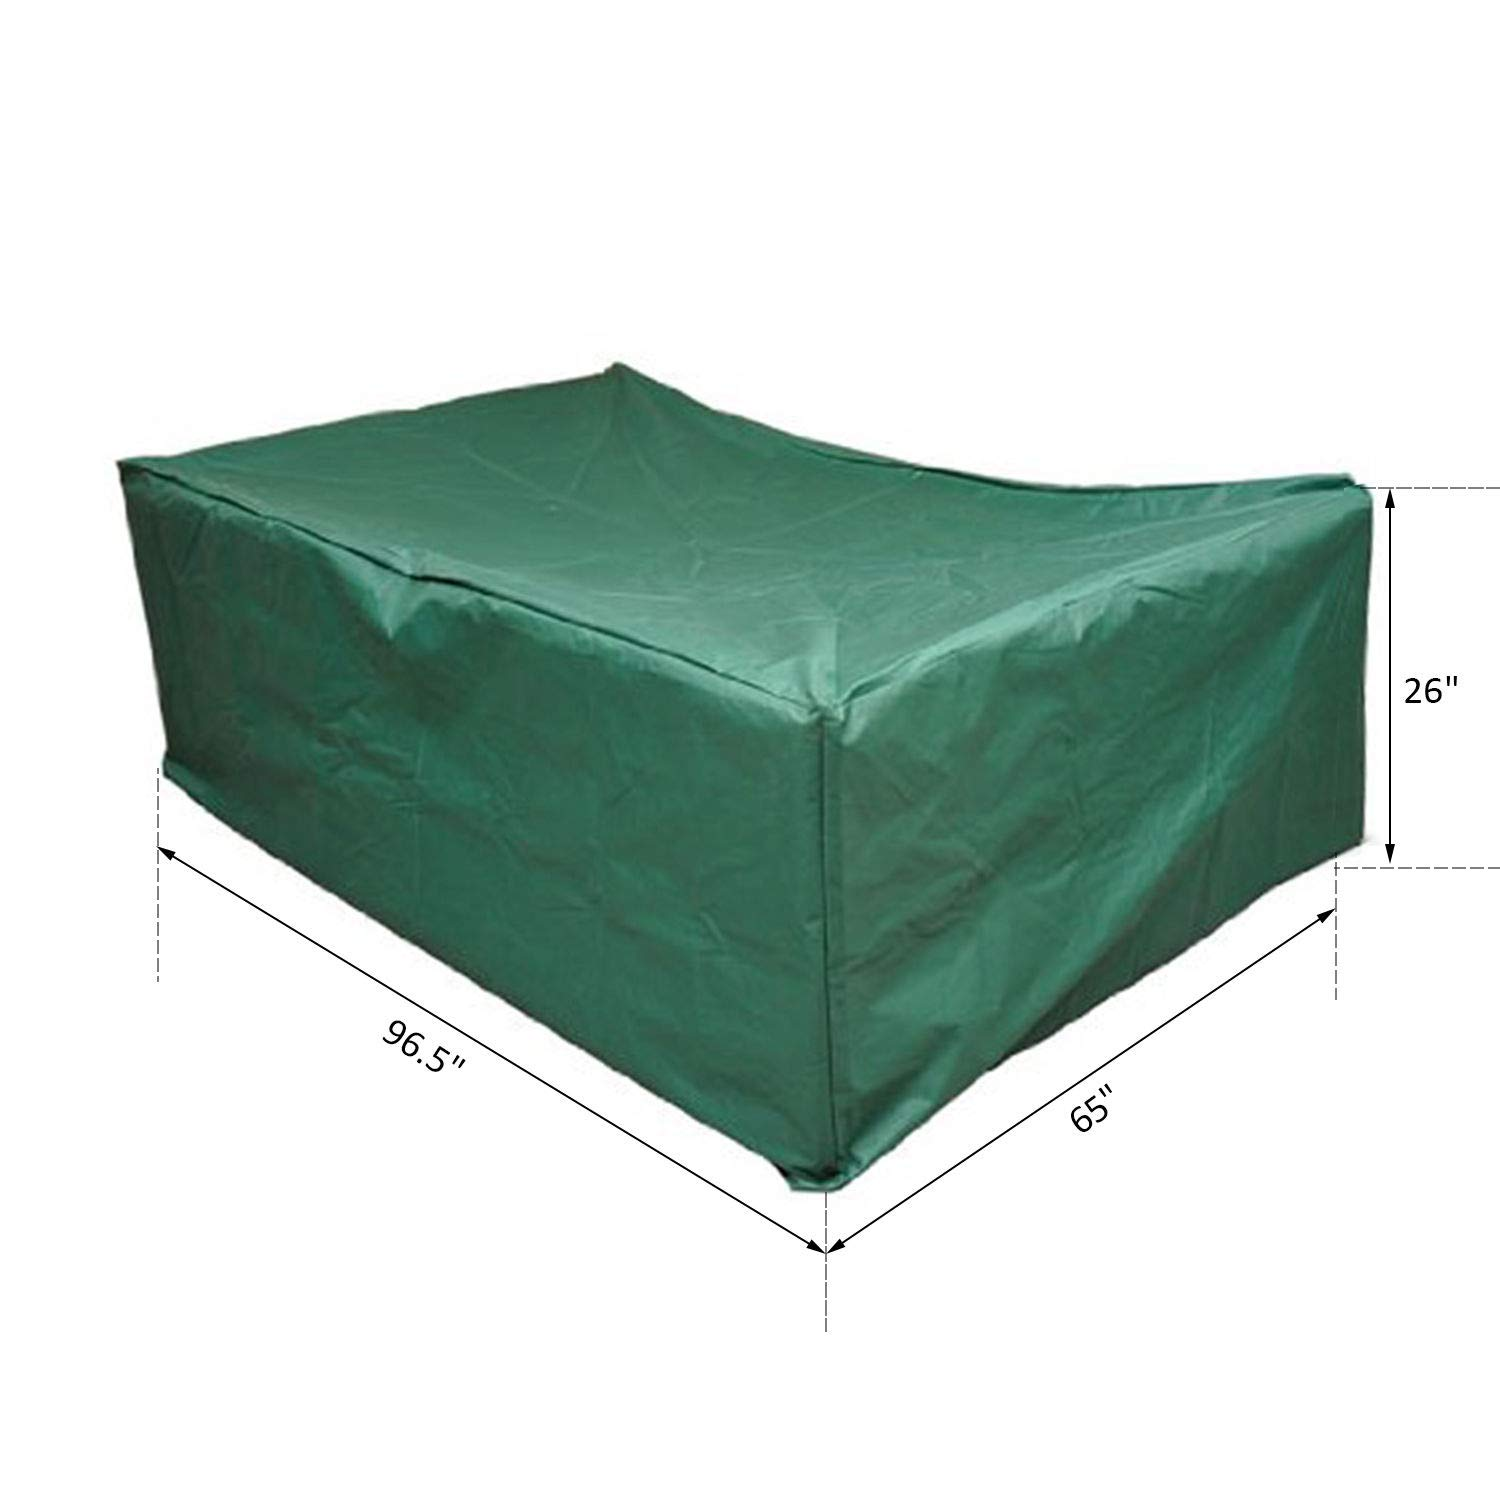 Outsunny Outdoor Sofa Sectional Furniture Set Cover, Green, 97-Inch x 65-Inch x 26-Inch by Outsunny